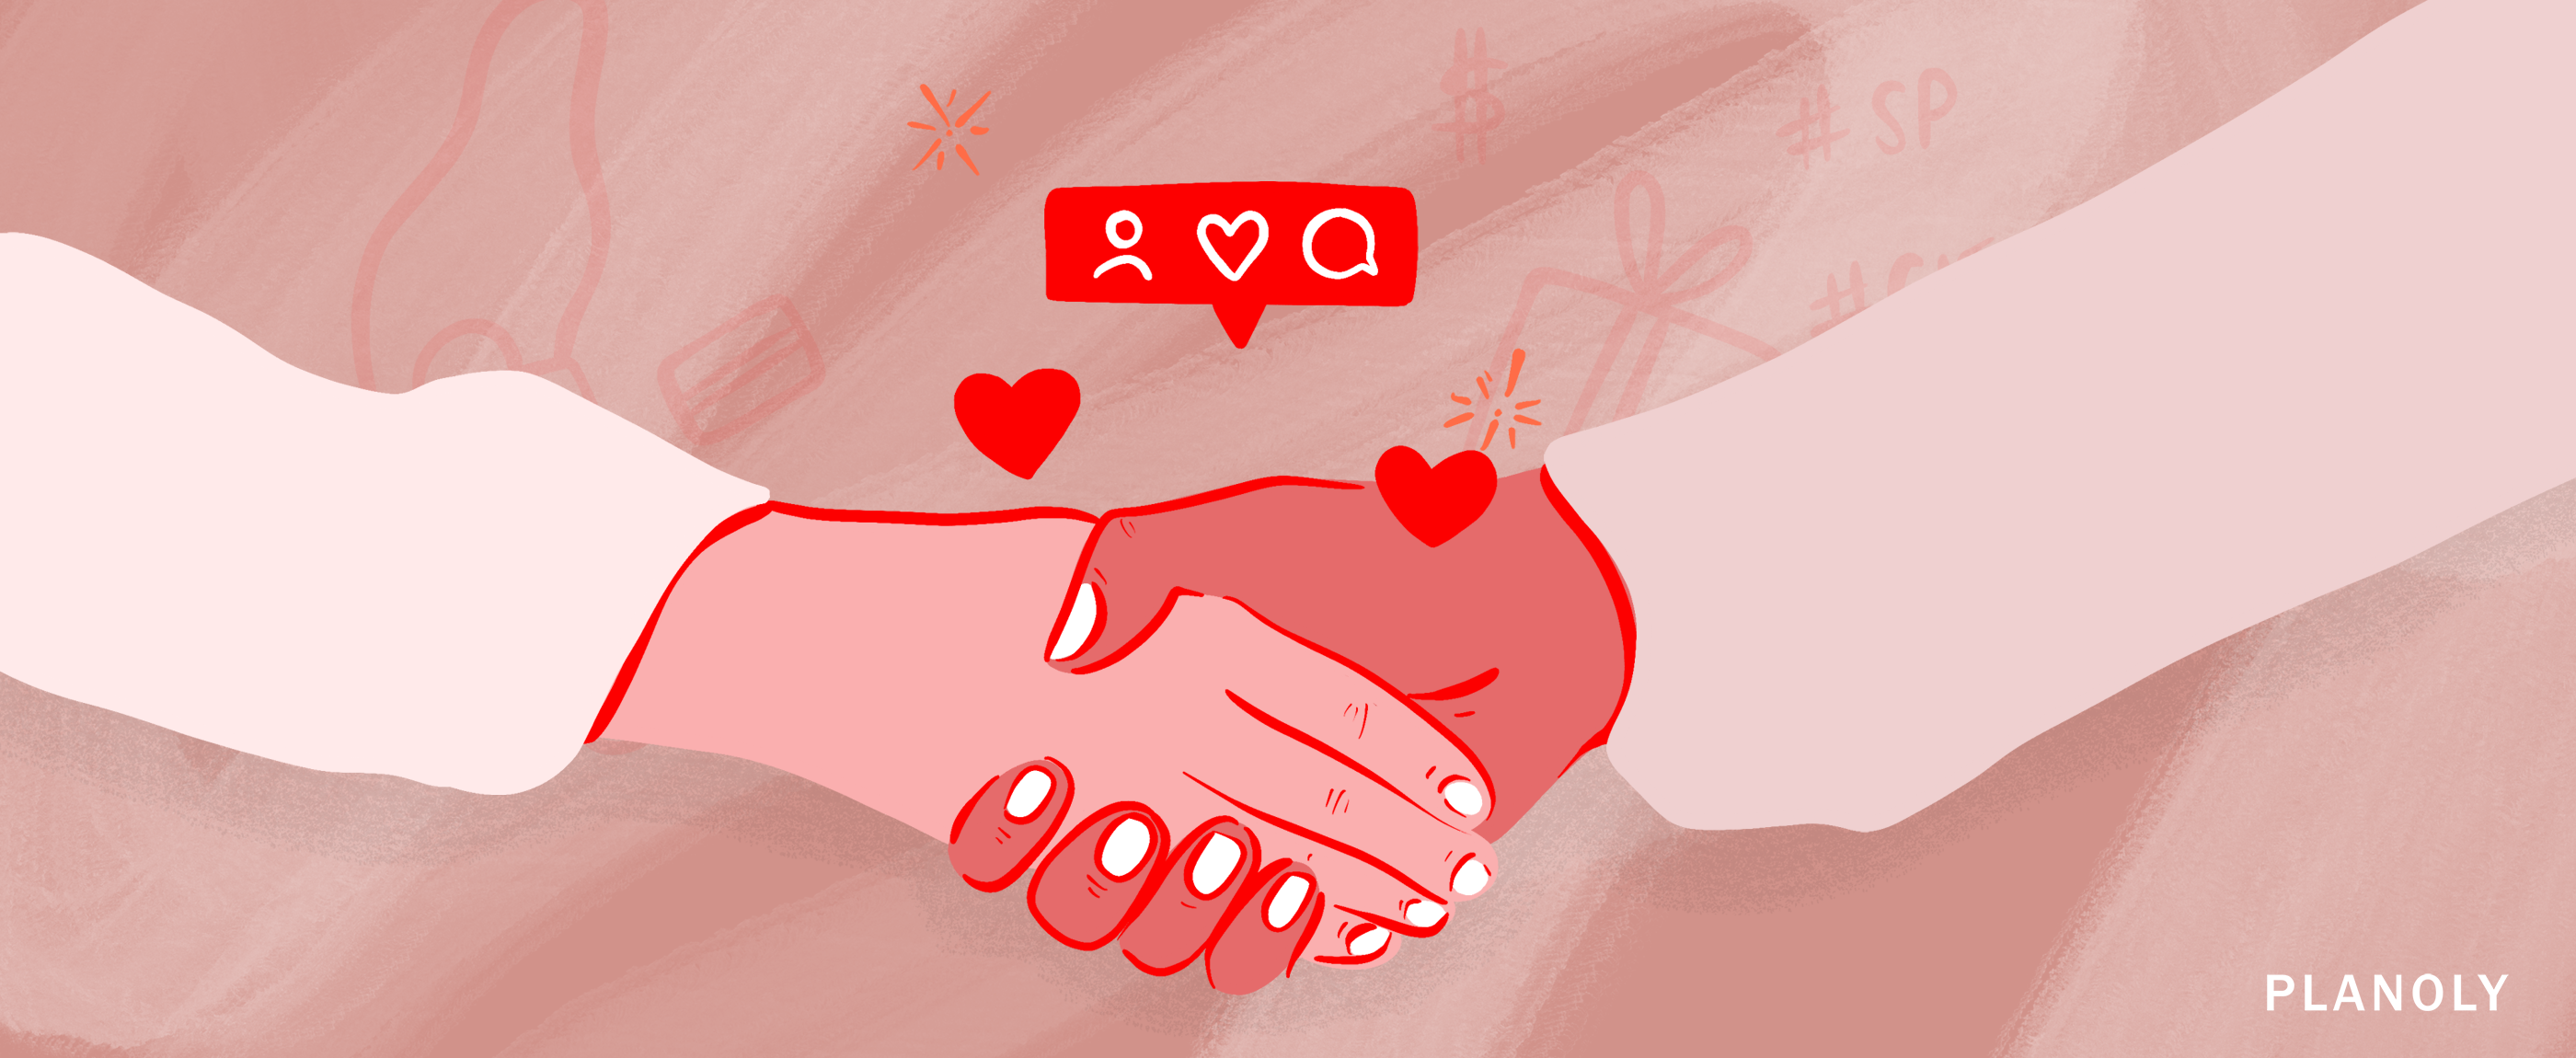 Brand Partnerships: Creating Lasting Relationships with Brands